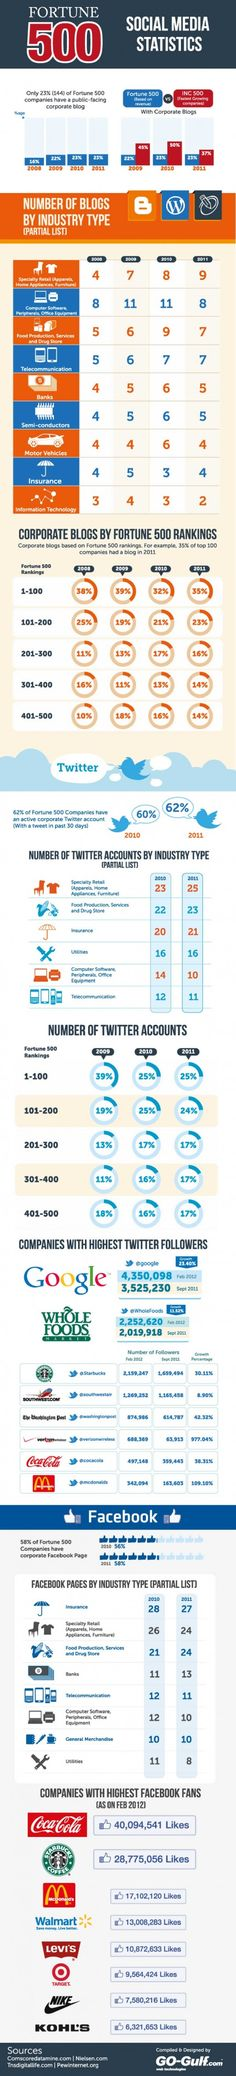 Find out which social media sites are popular with Fortune 500 companies. This Infographic was posted from Digital Buzz Blog.